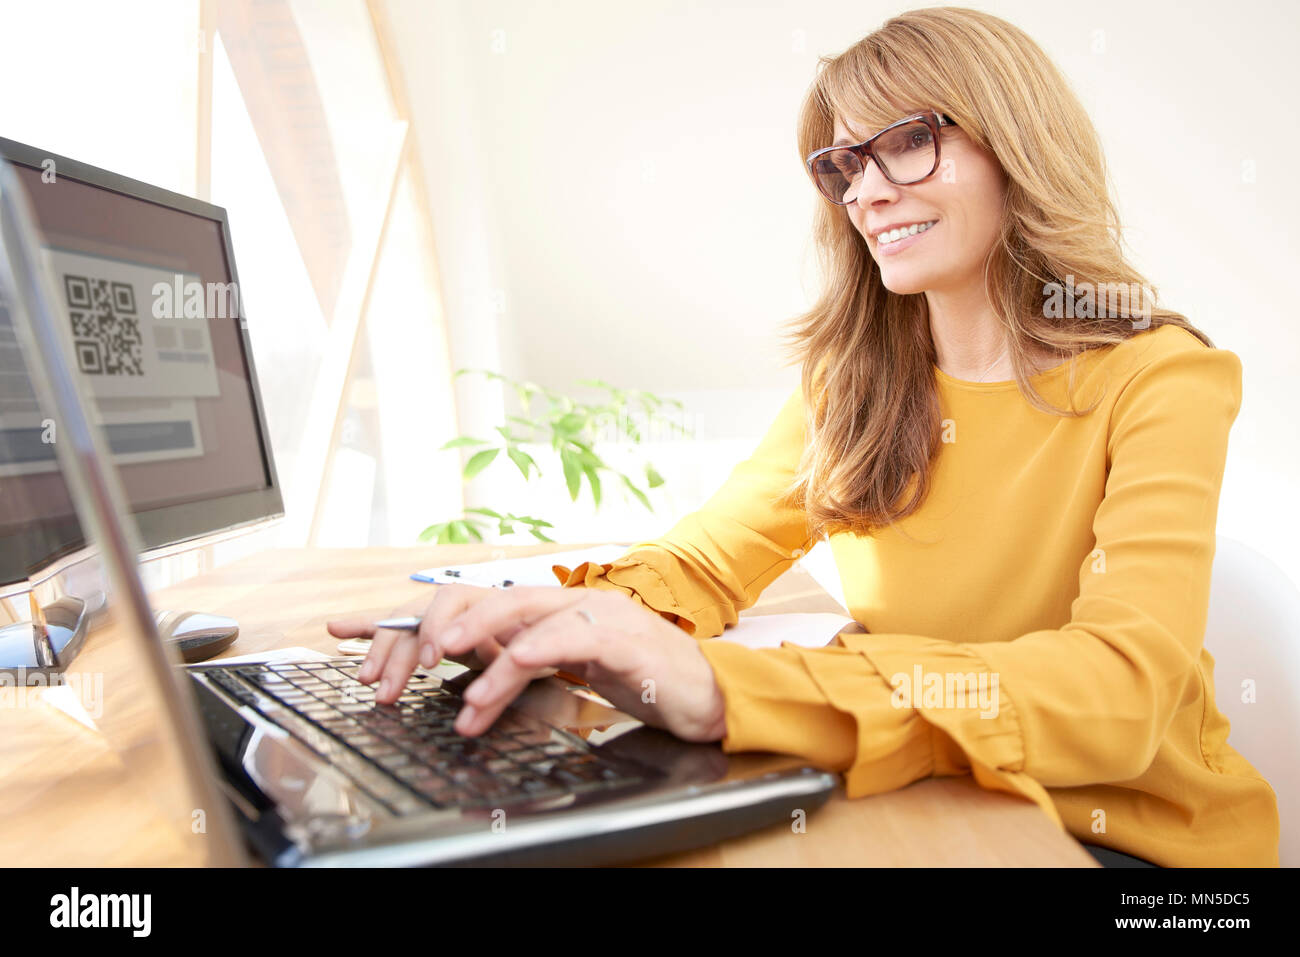 Smiling mature woman typing on laptop while sitting at desk et de travail au bureau. Photo Stock